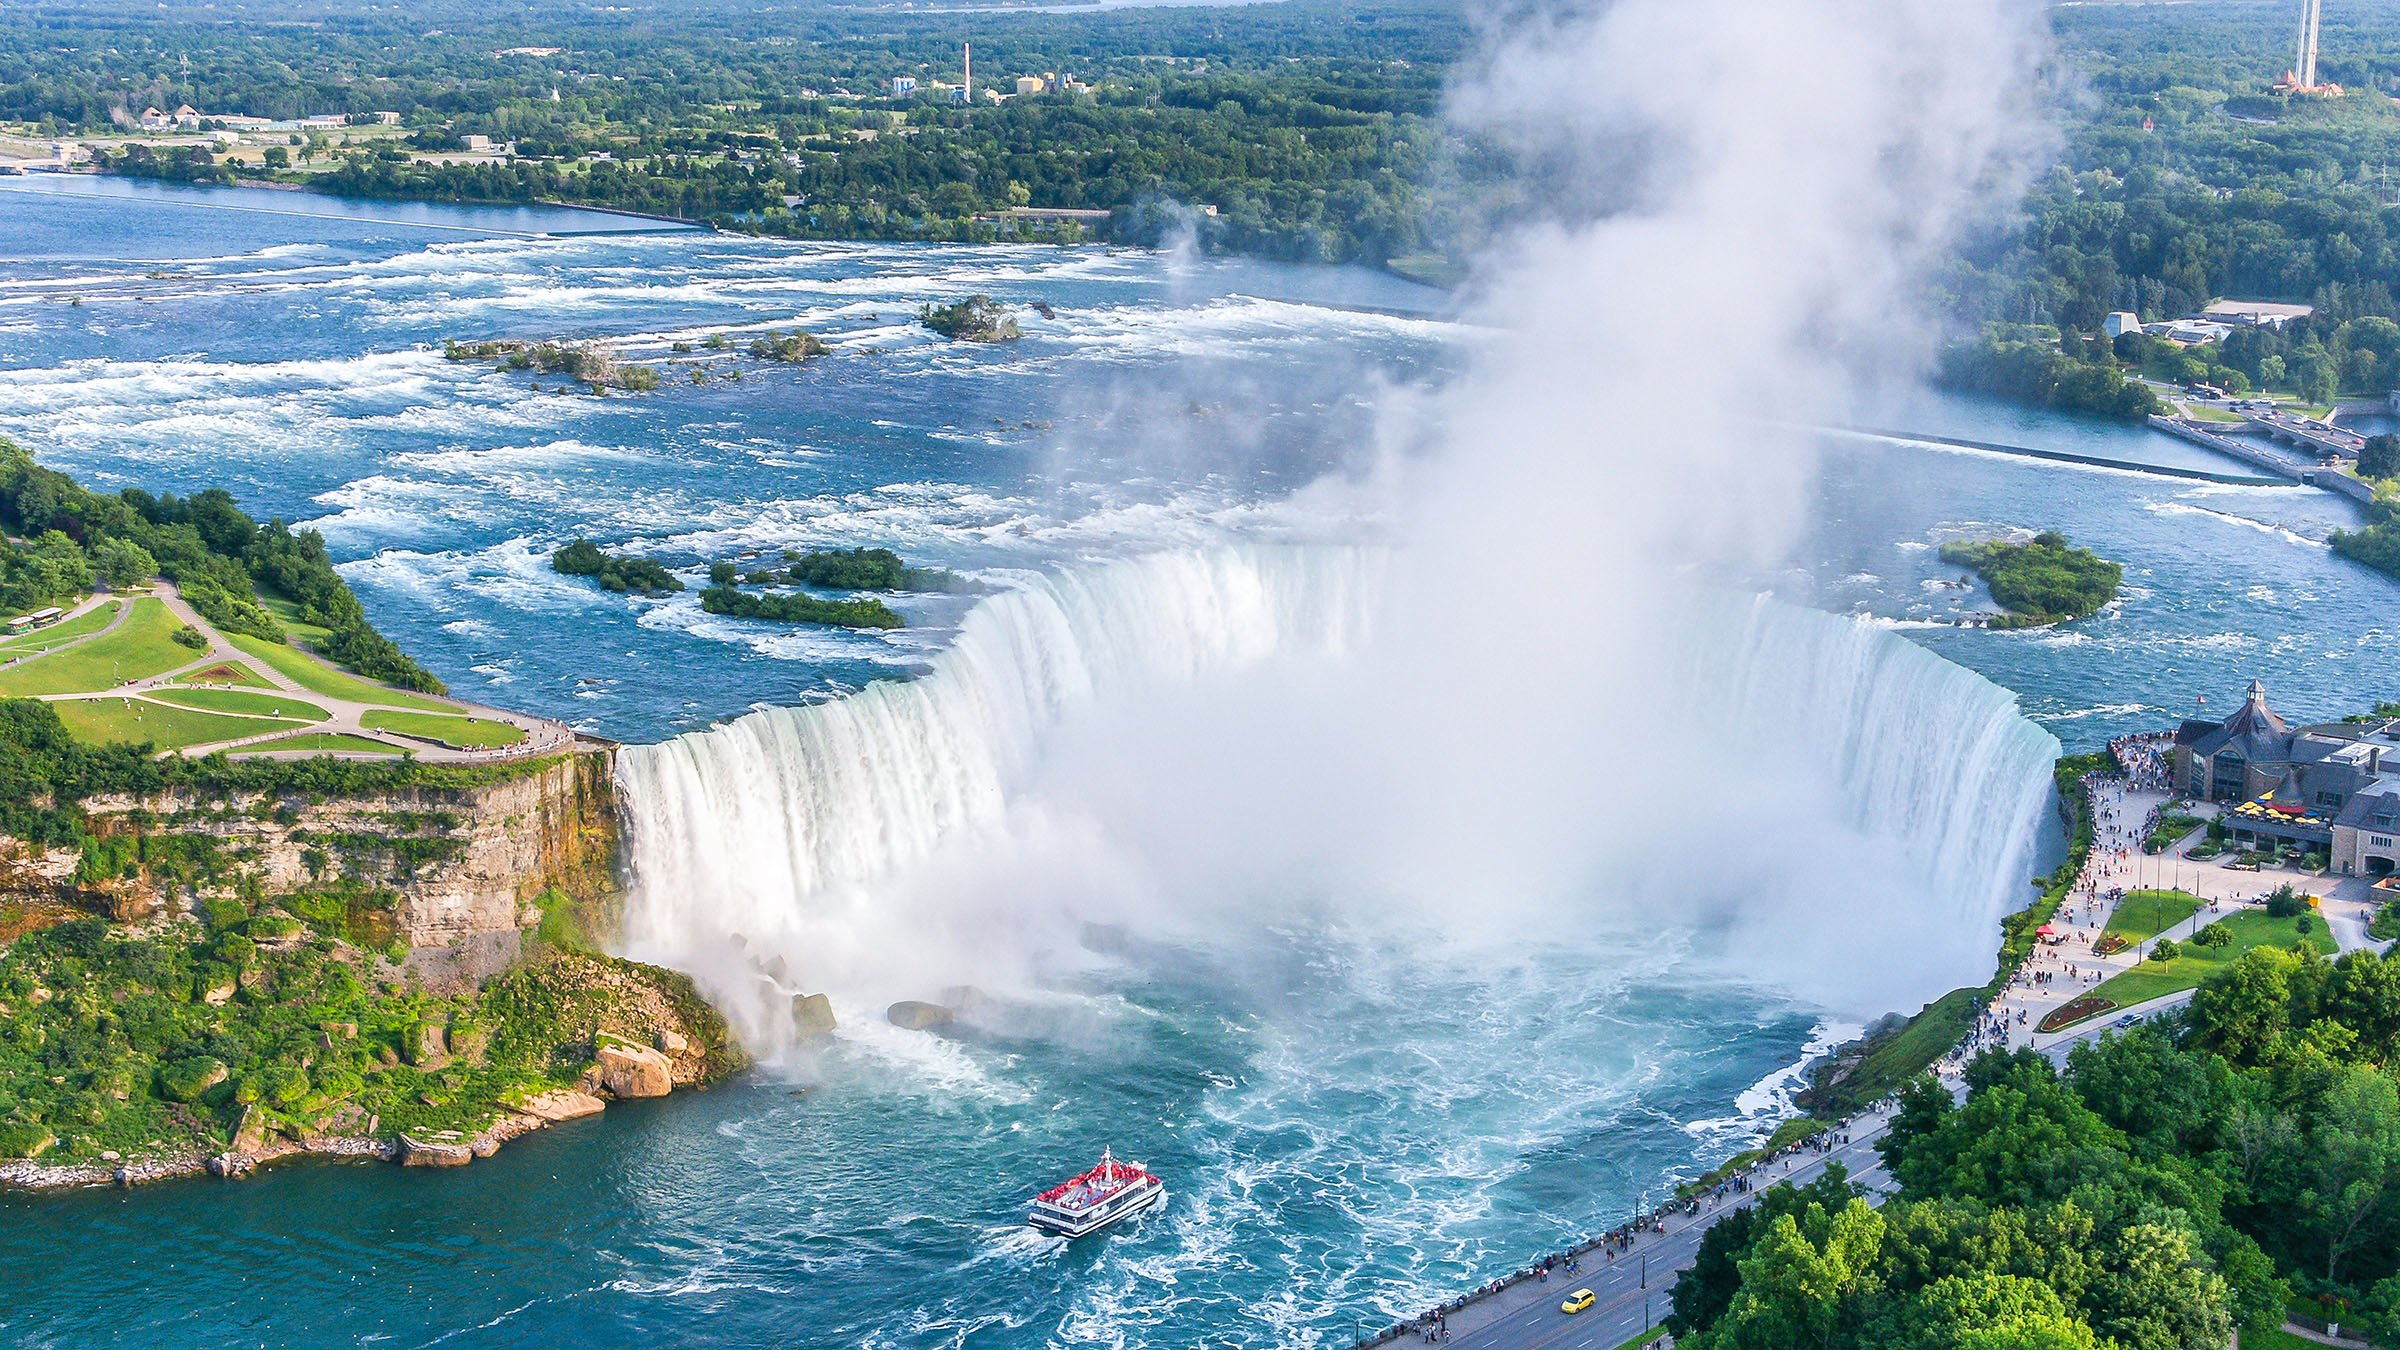 Las cataratas del ni gara una frontera natural entre eeuu for Most beautiful scenic places in the us